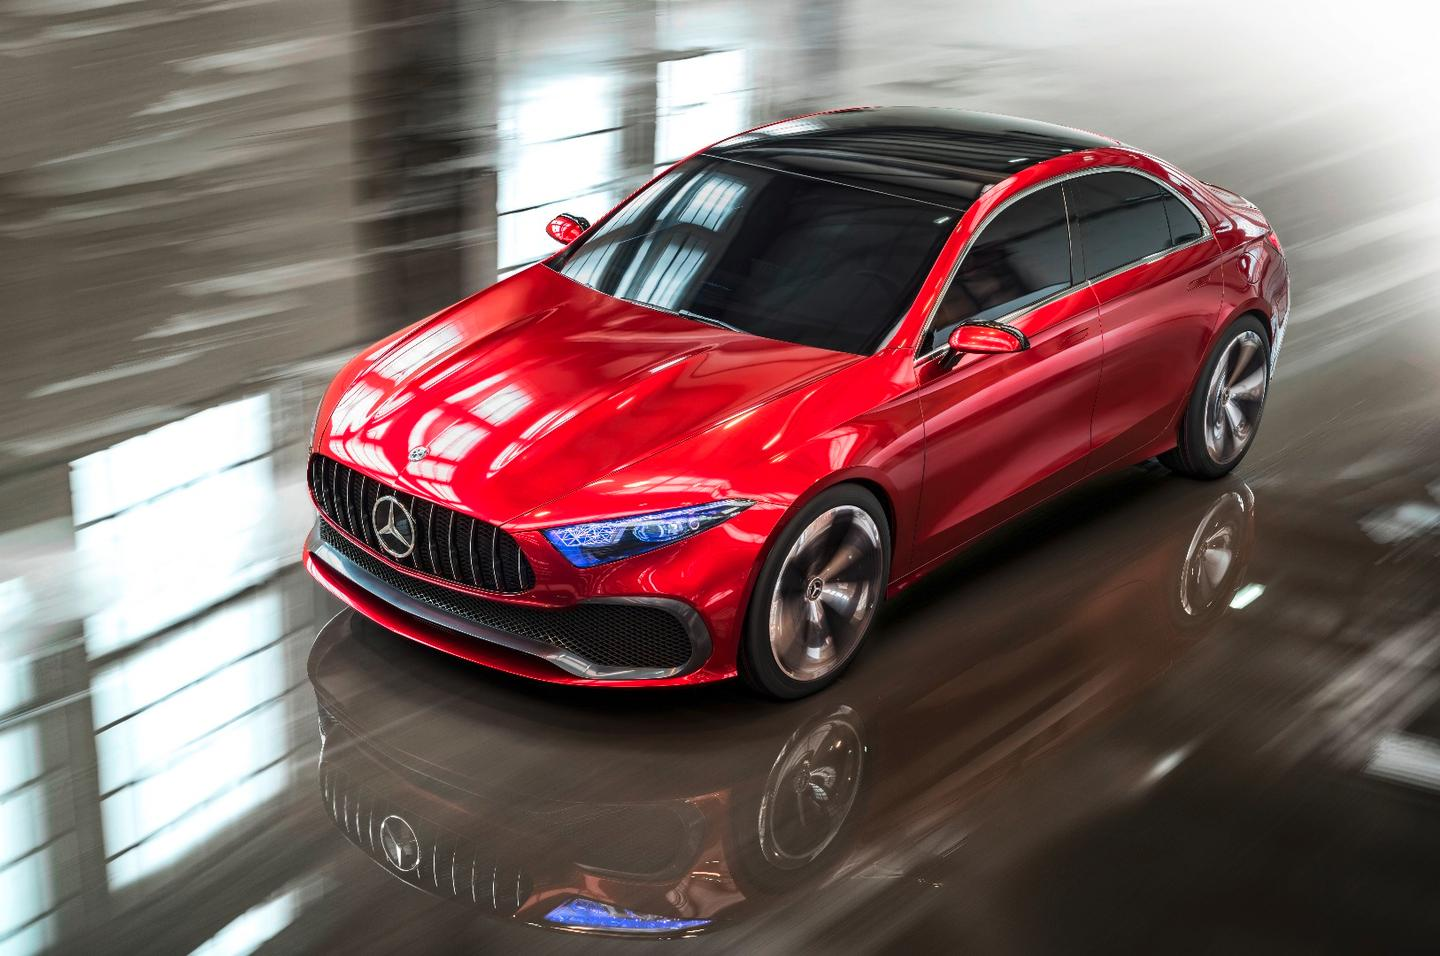 The Mercedes-Benz Concept A Sedan is presently on display in Shanghai during the auto show